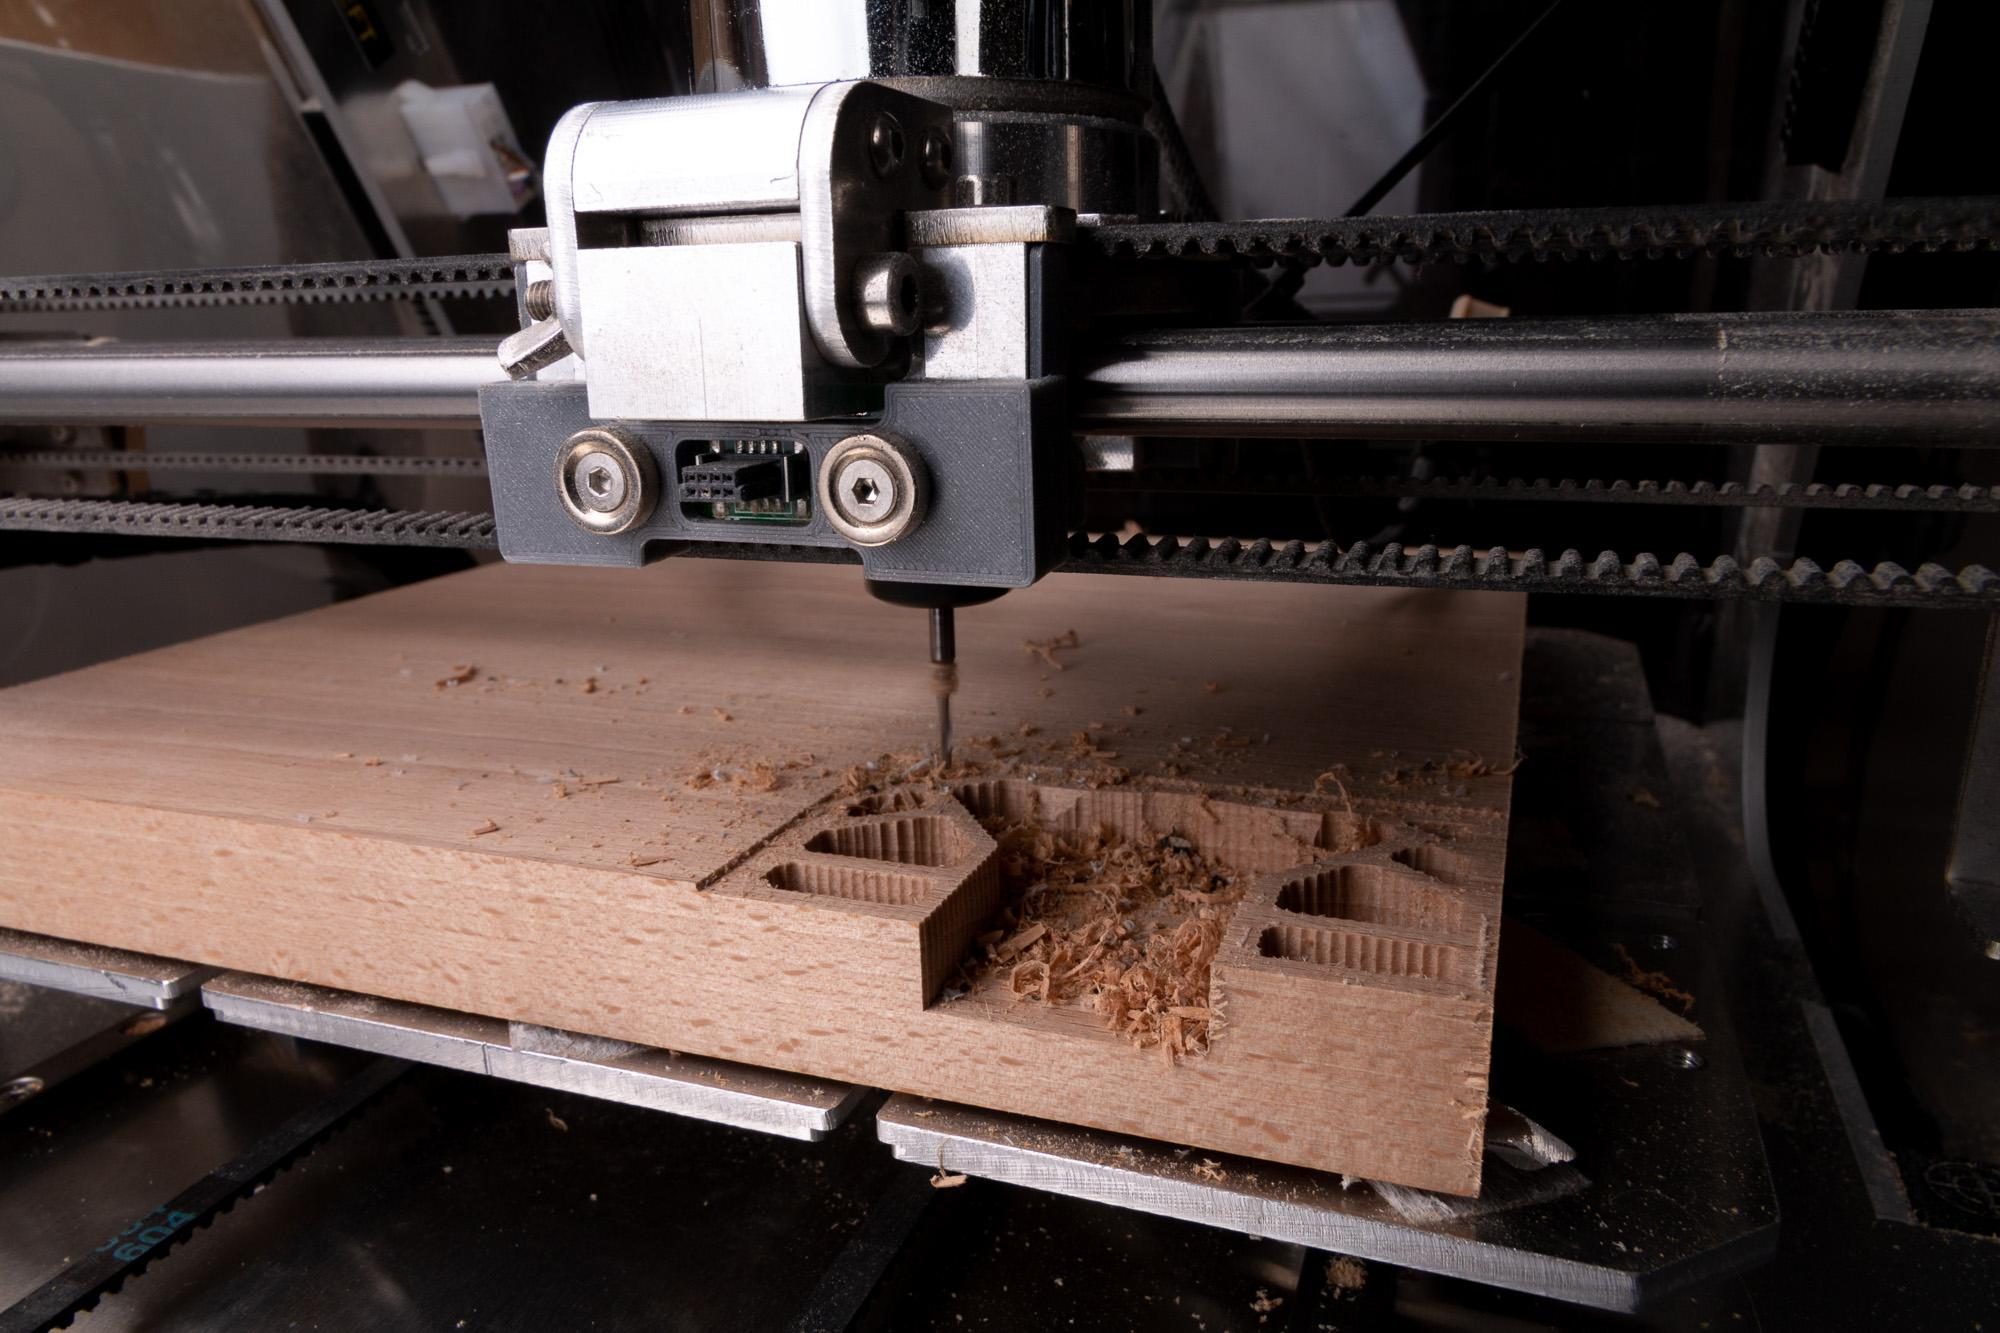 CNC and 3D printing